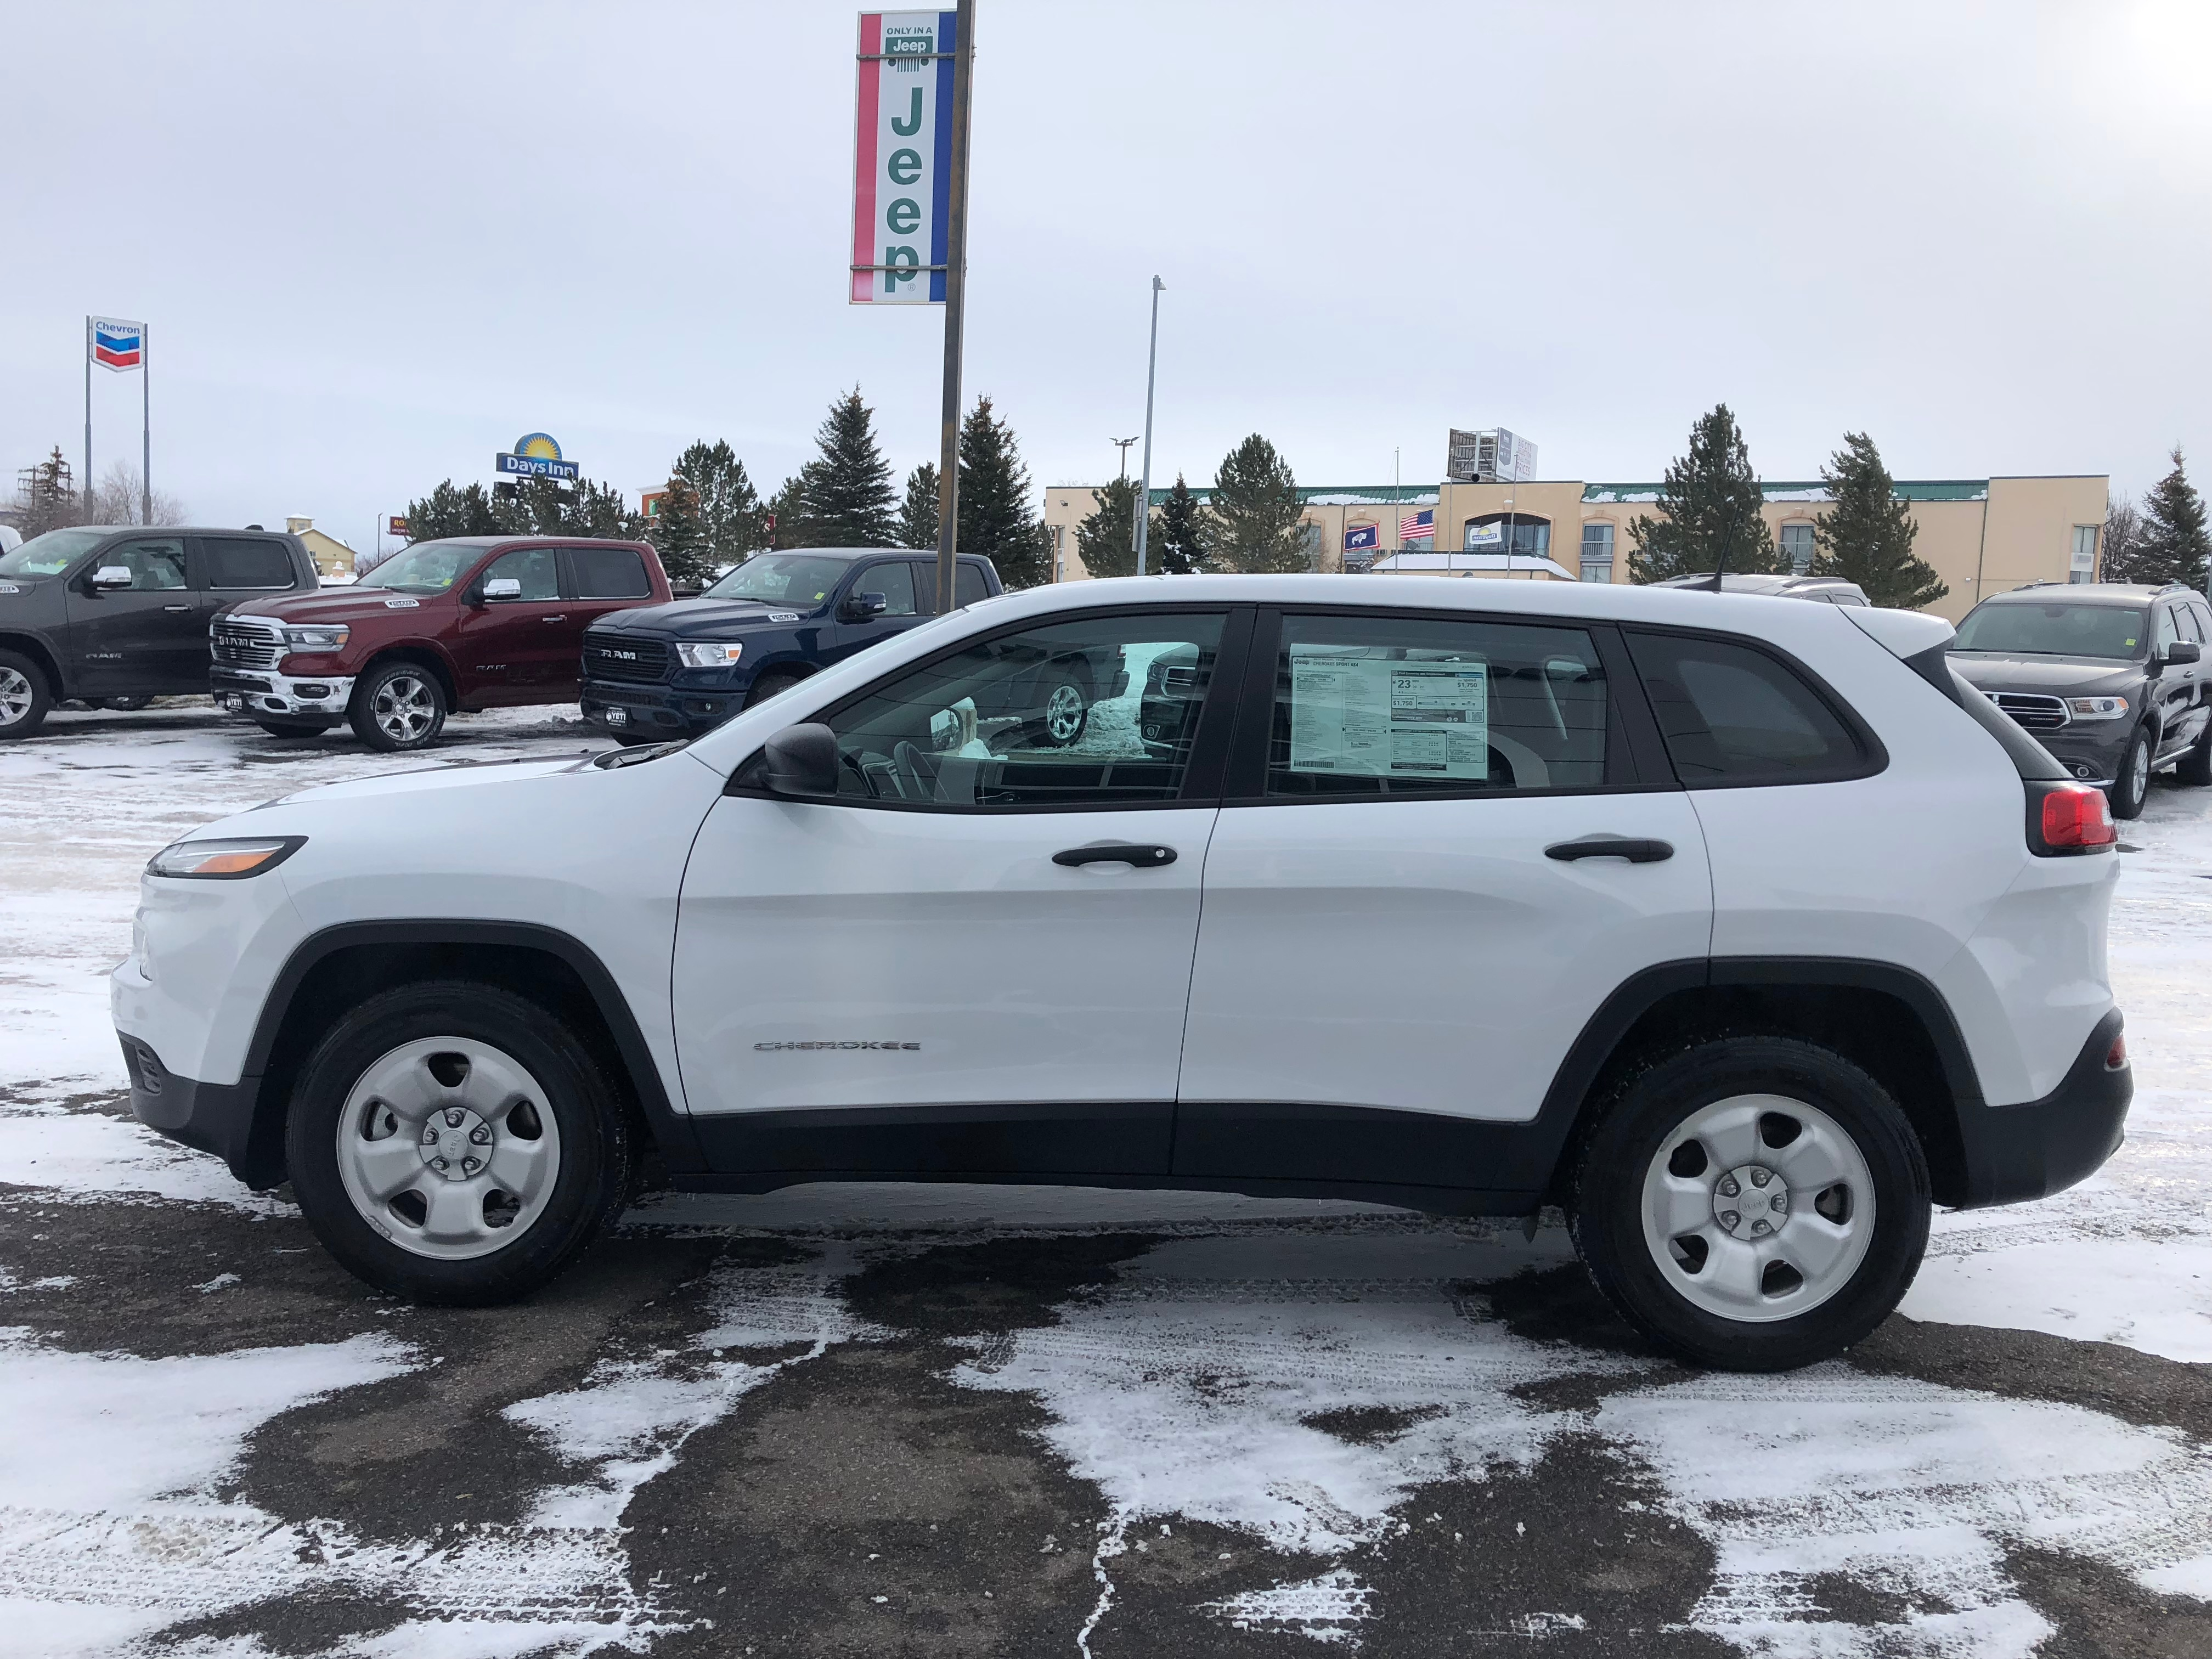 Used 2017 Jeep Cherokee For Sale at Rocky Mountain Yeti Evanston